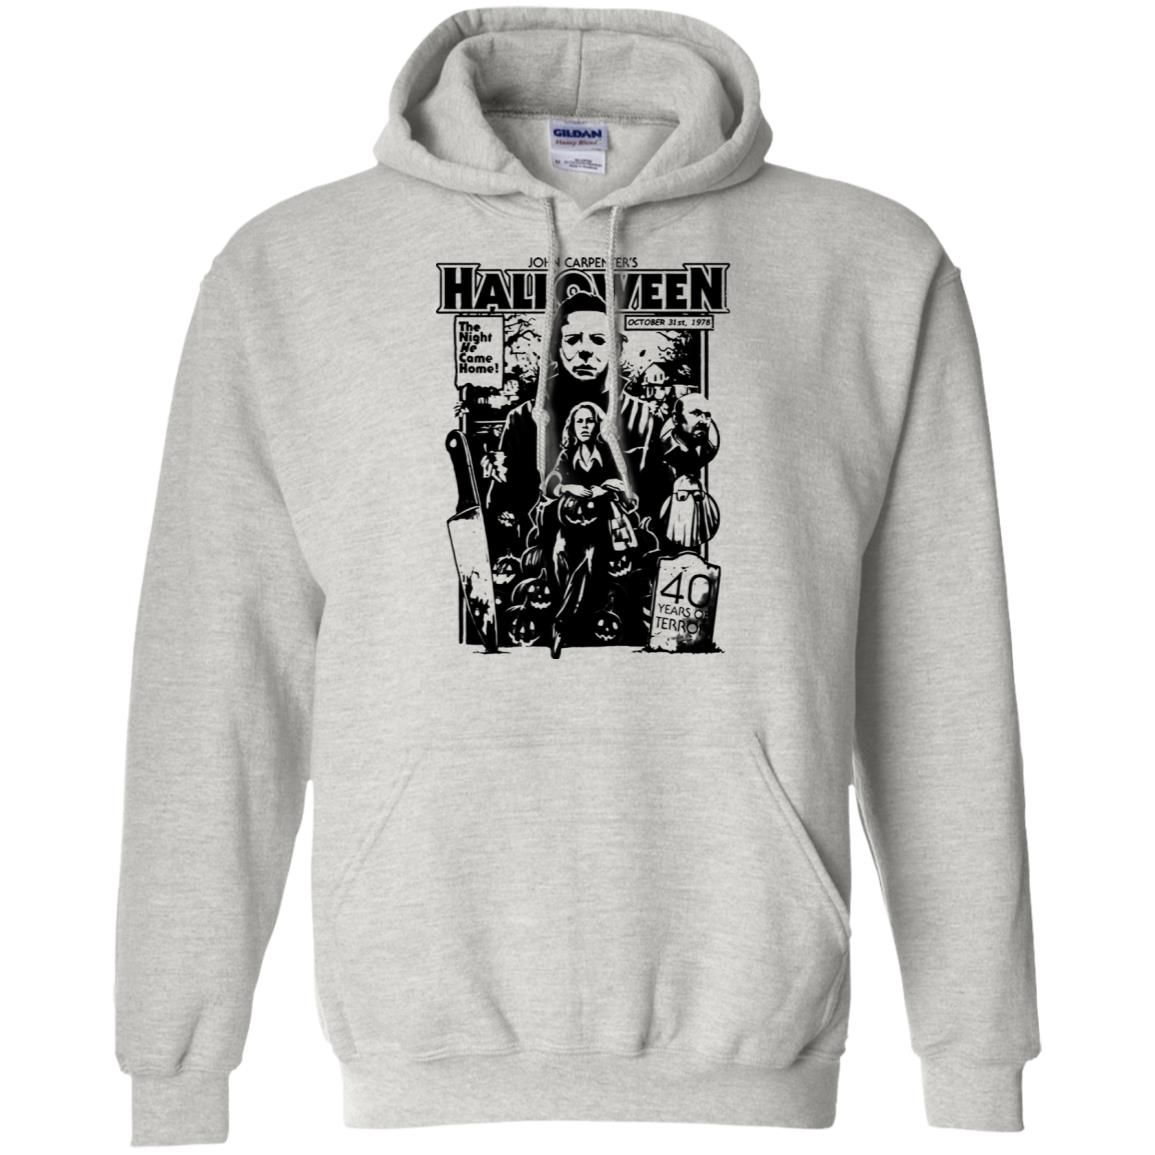 Michael Myers Halloween 1978 Horror Movie Pullover Hoodie